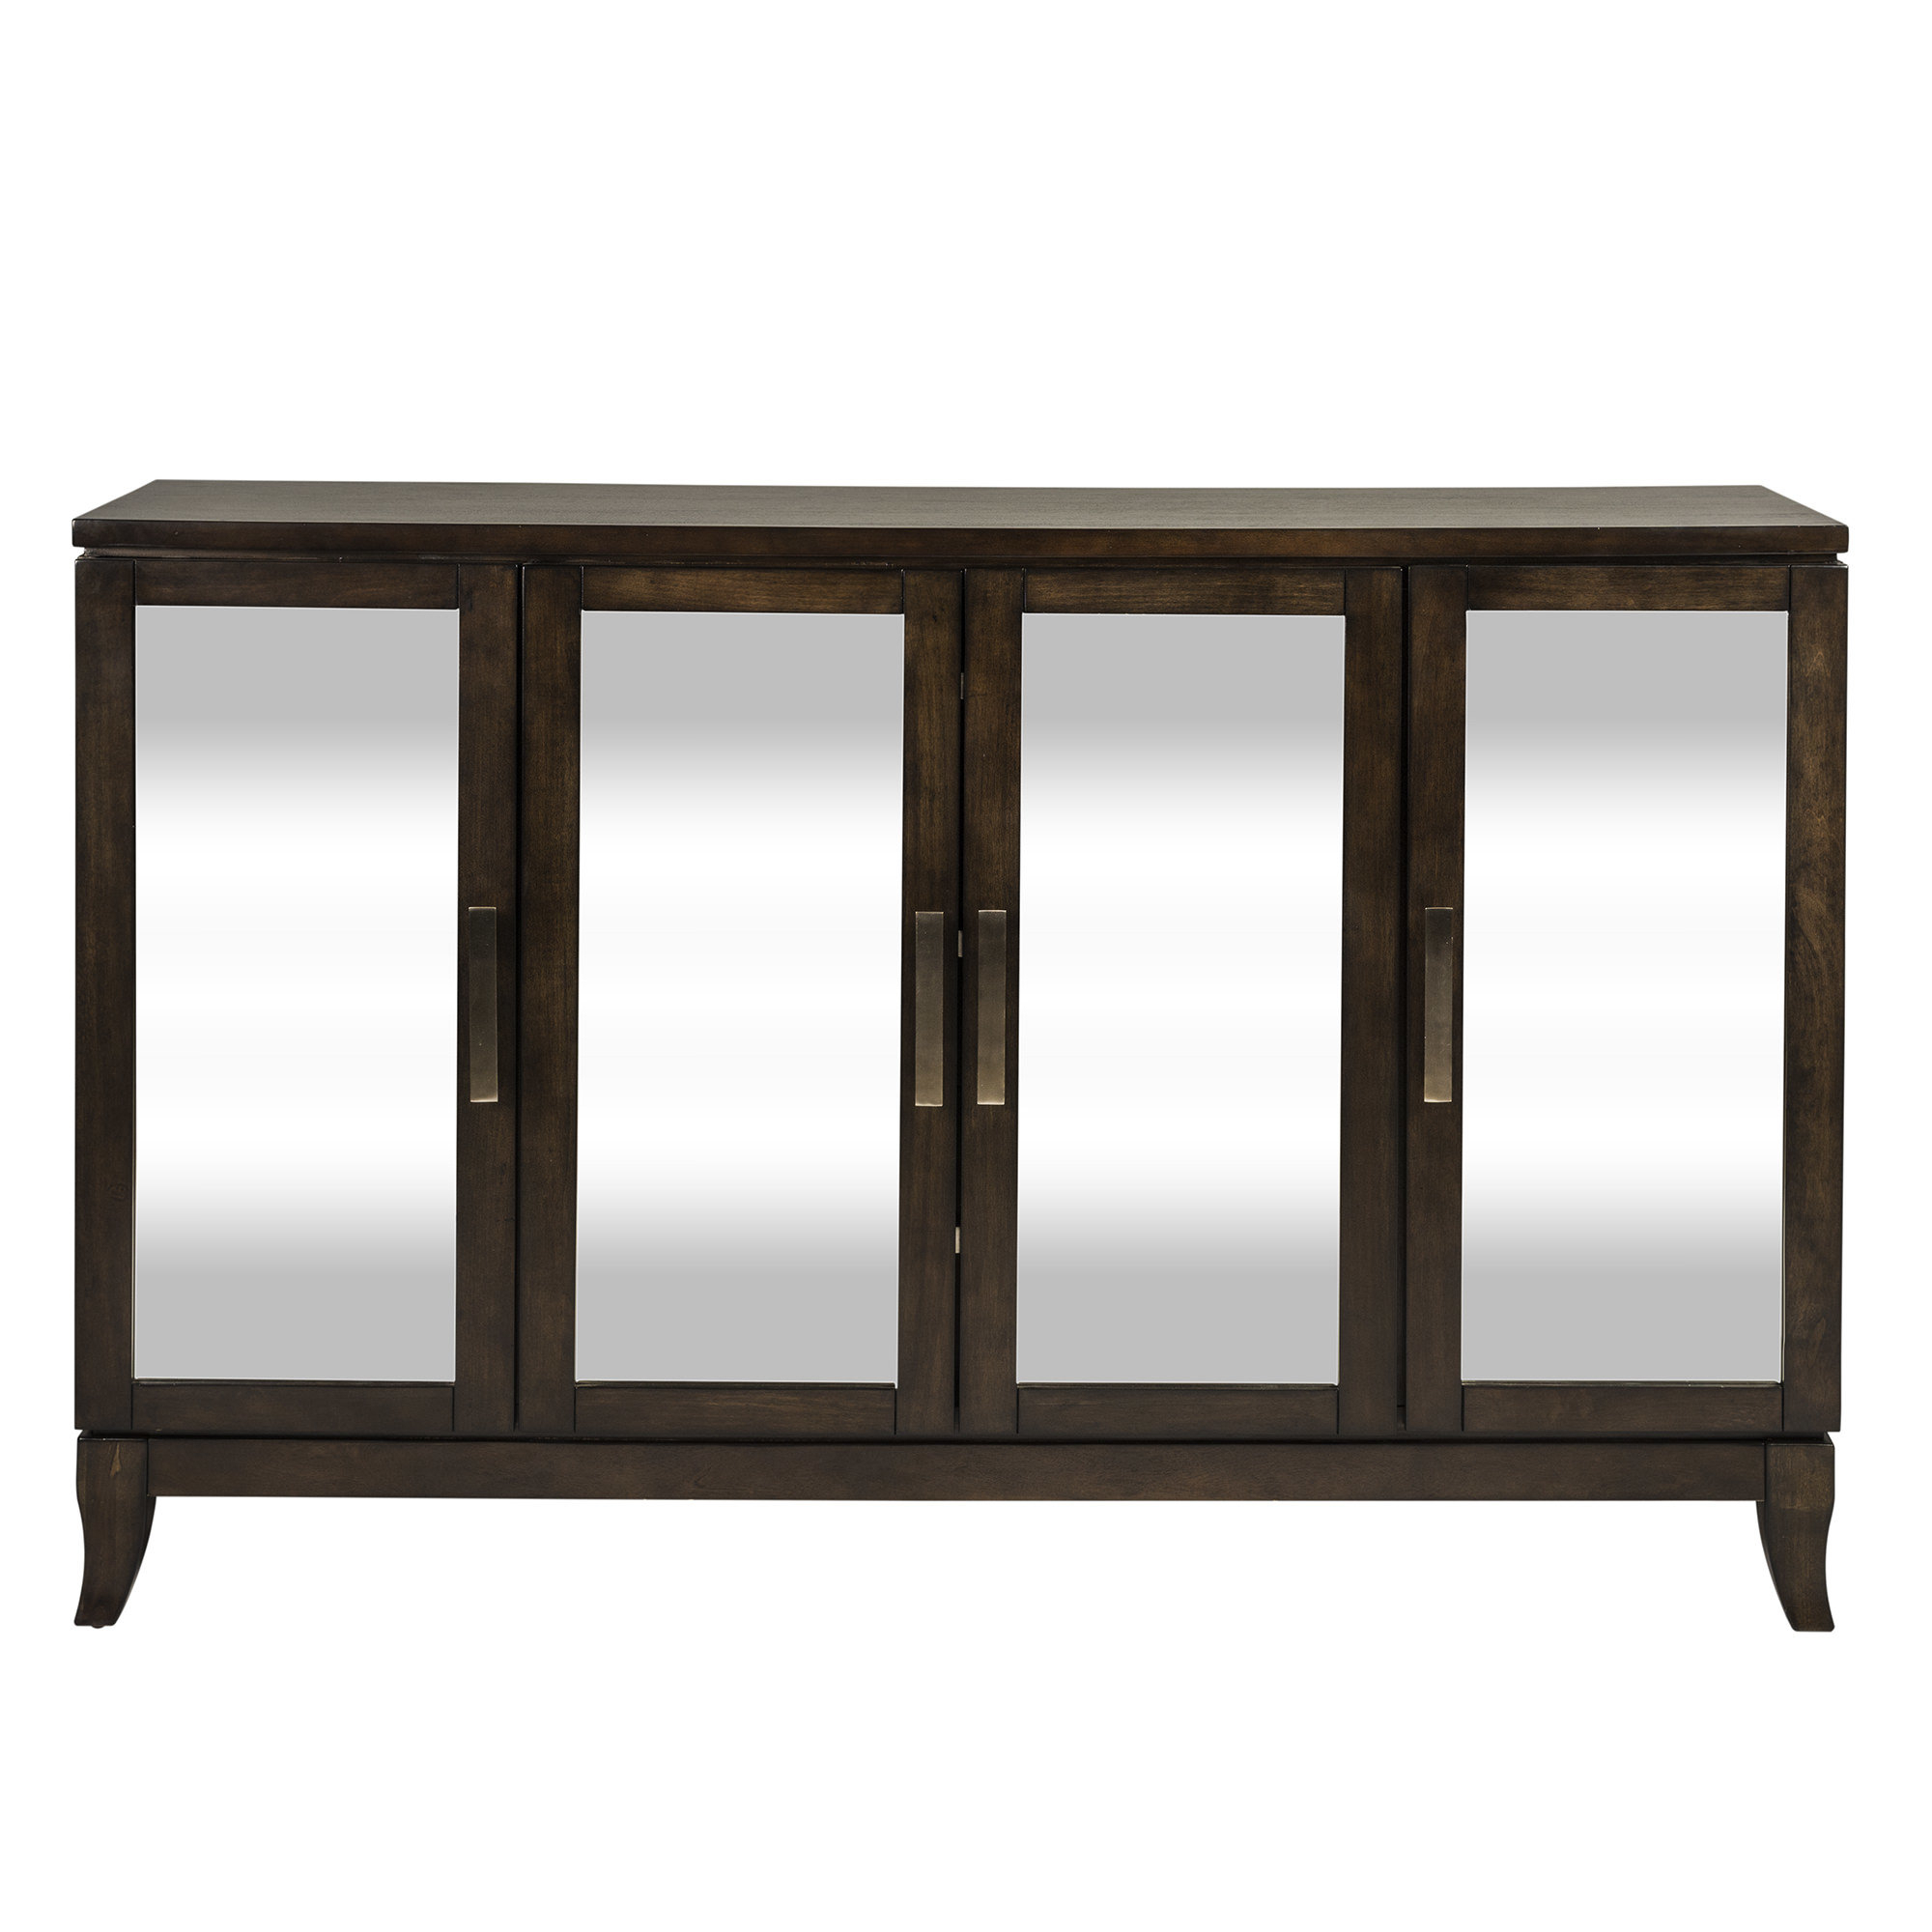 Willa Arlo Interiors Borel Sideboard For Well Known Chaffins Sideboards (View 20 of 20)